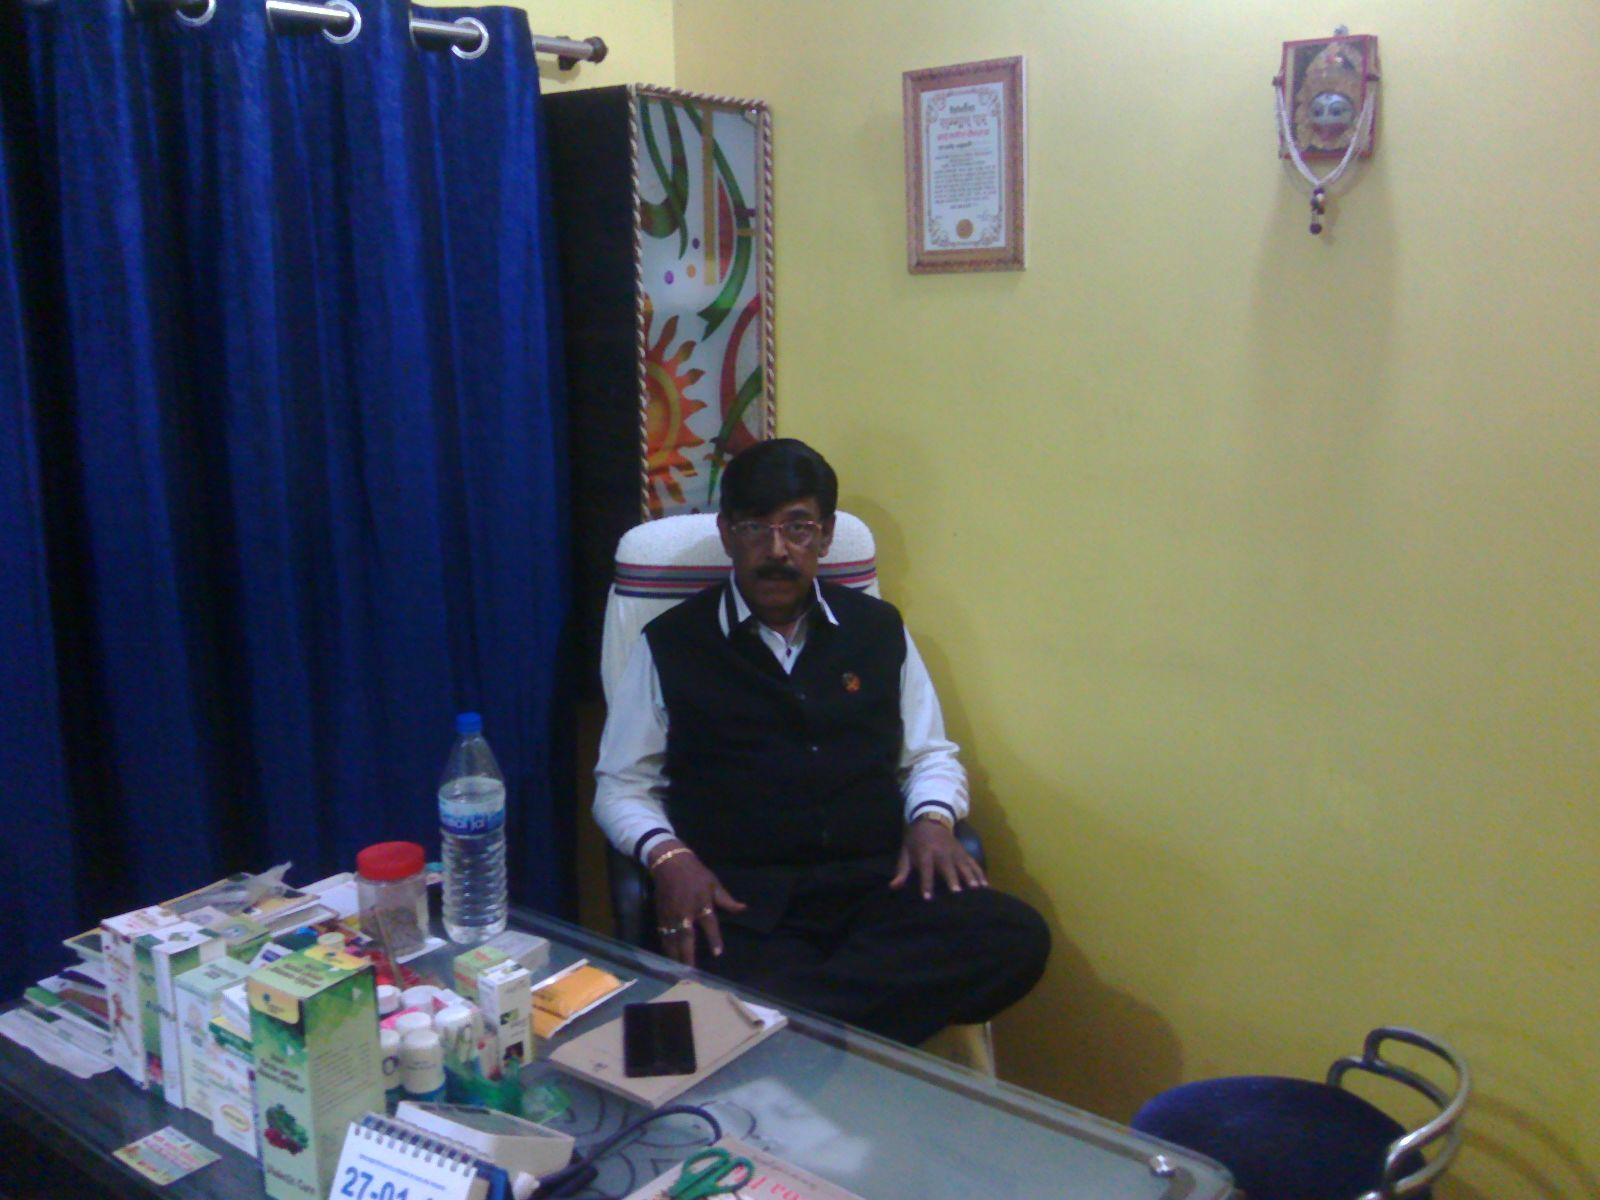 MAHARISHI AYURVED CLINIC IN RAMGARH